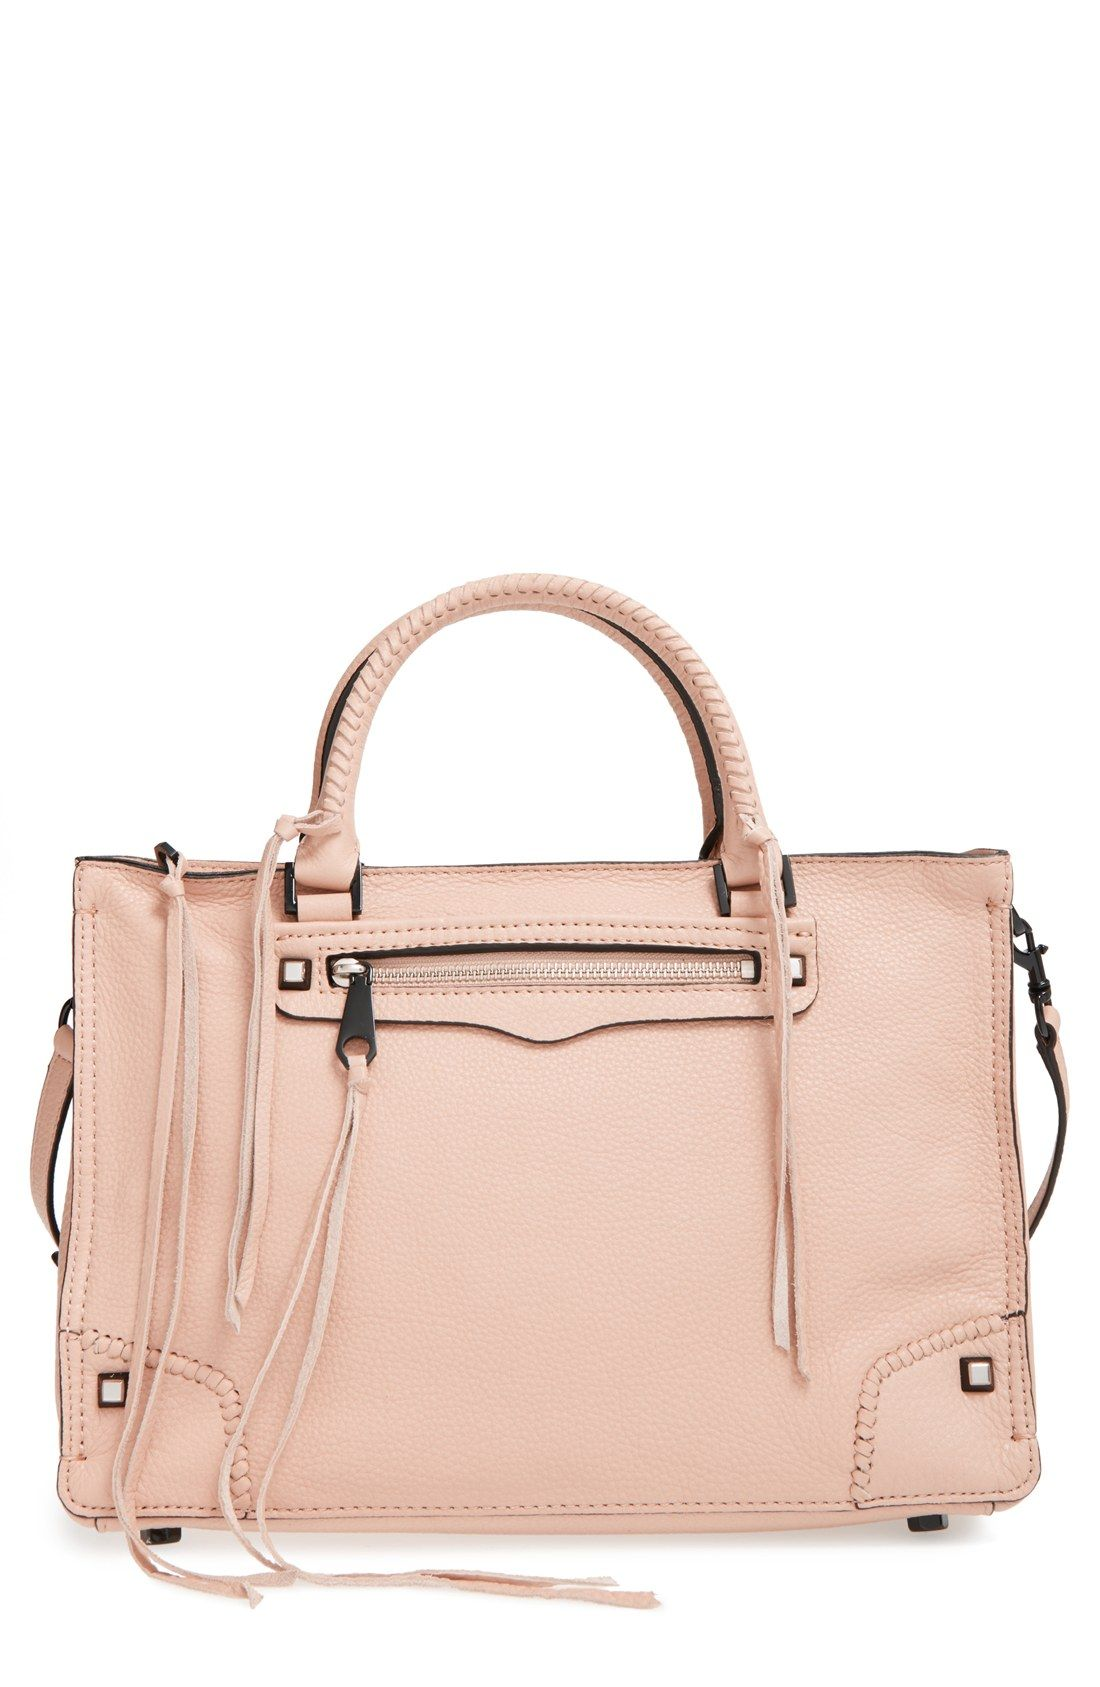 In love with this Rebecca Minkoff tote bag. The leather is so soft ...